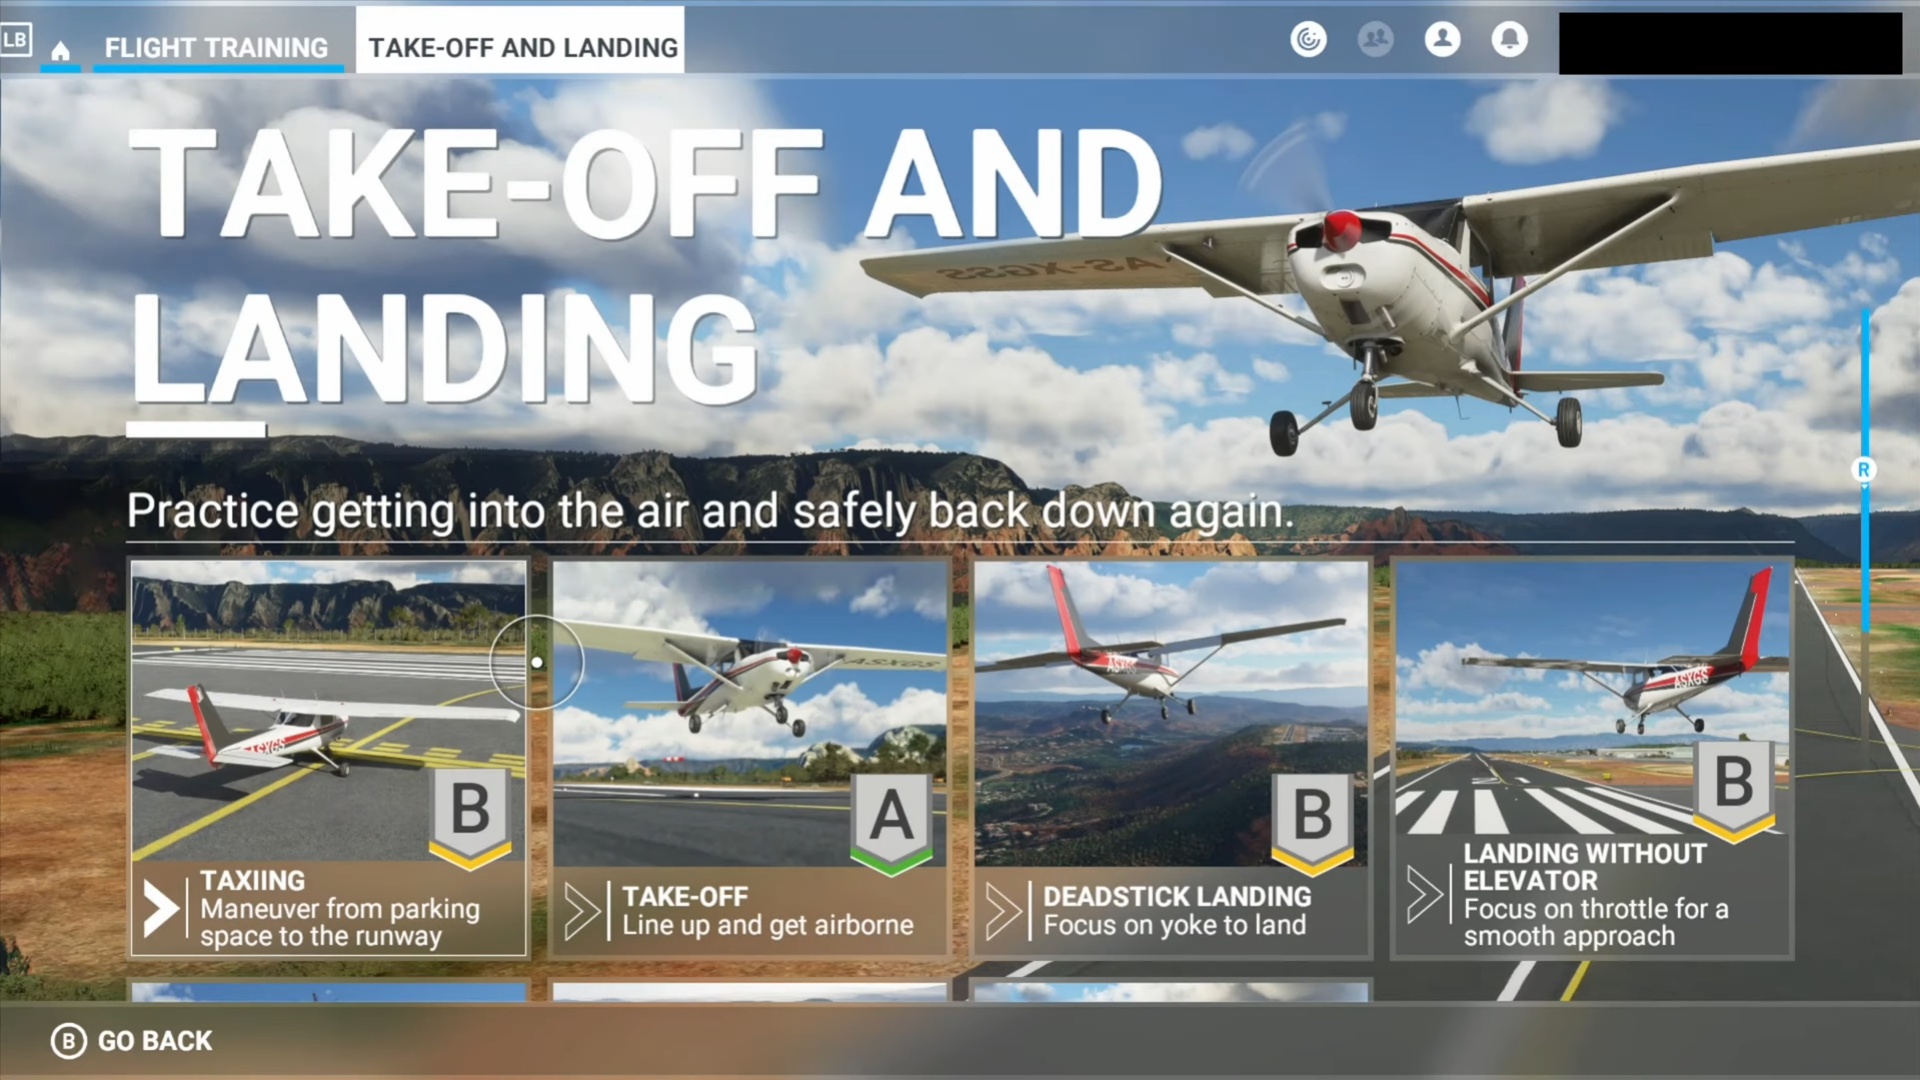 A screenshot showing some of the Take-Off and Landing Flight Training missions.